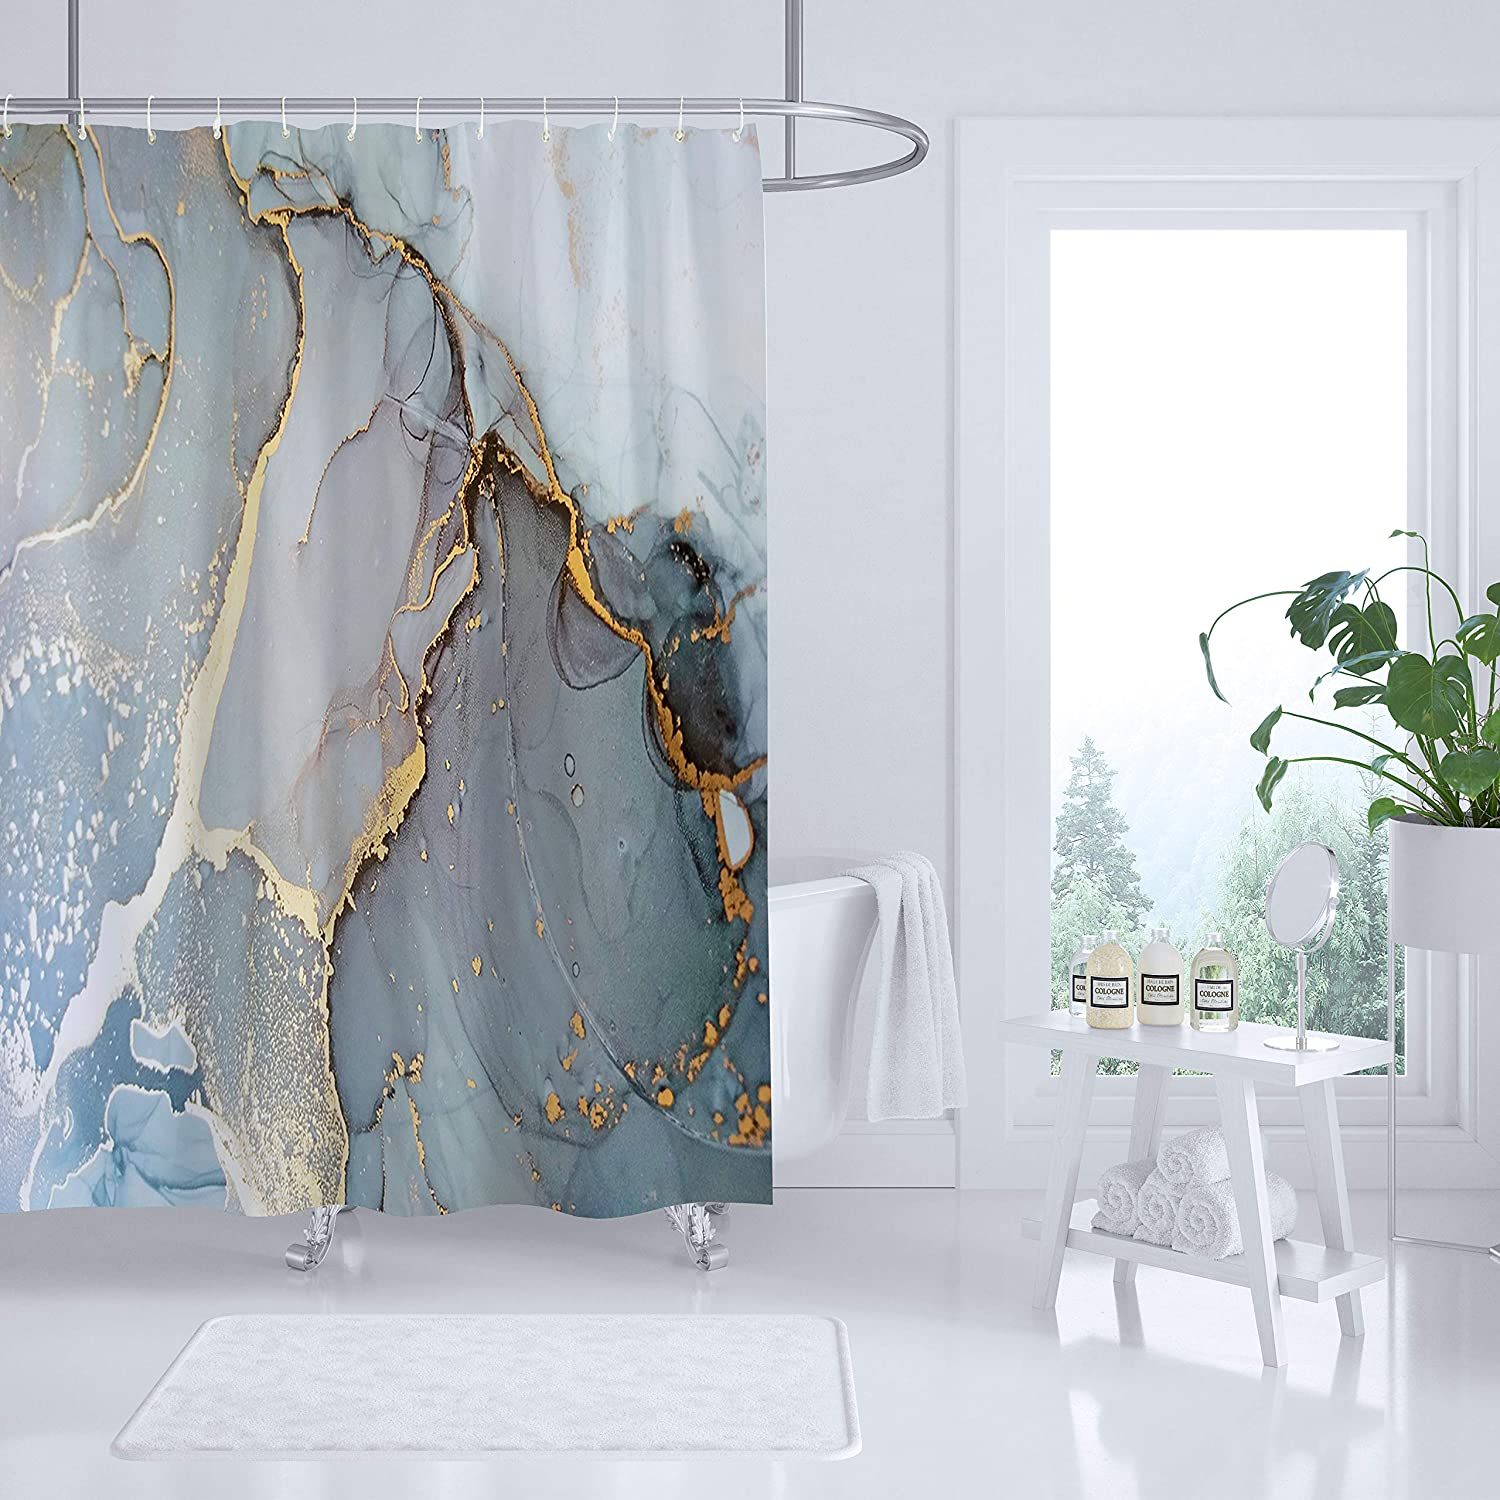 Sufancy Marble Shower Curtain,Light Gray Stone Light Granite Home Bathroom Decor Polyester Fabric Waterproof Machine Washable 72x78 Inches Set with Hooks